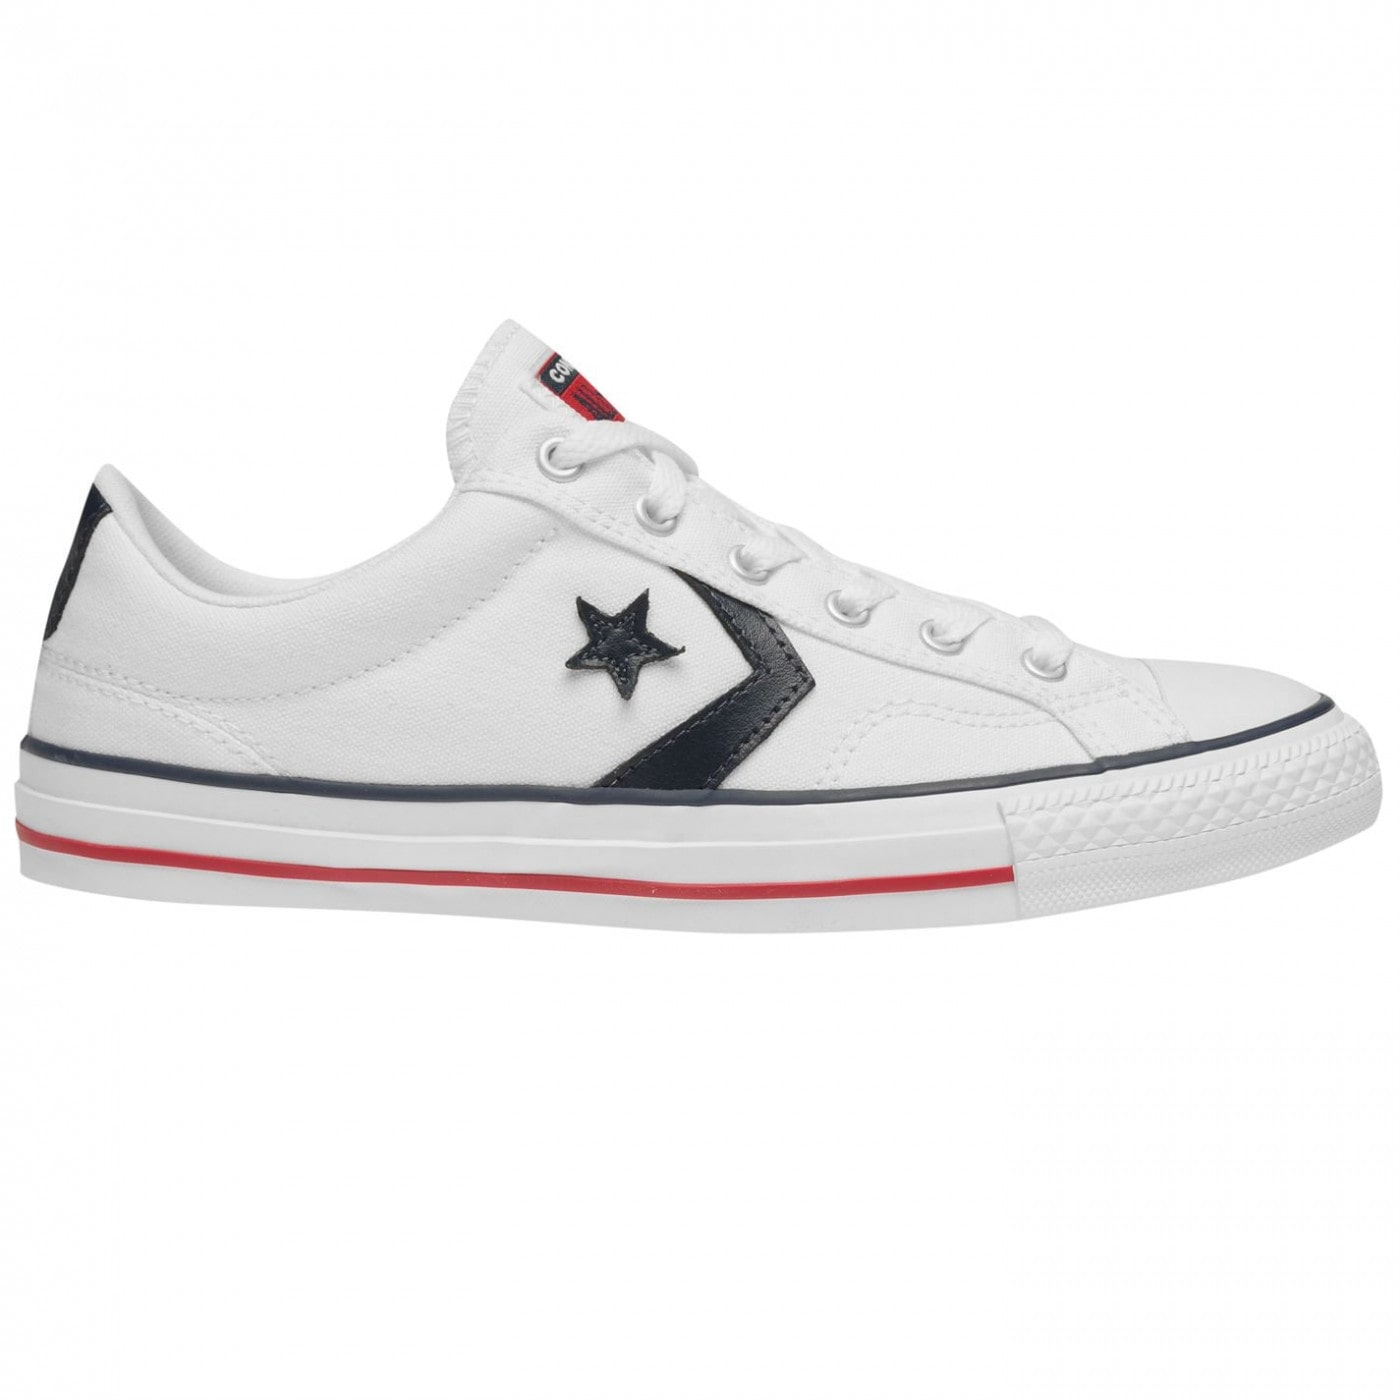 Converse Lifestyle Chuck Taylor All Star Ox Trainers